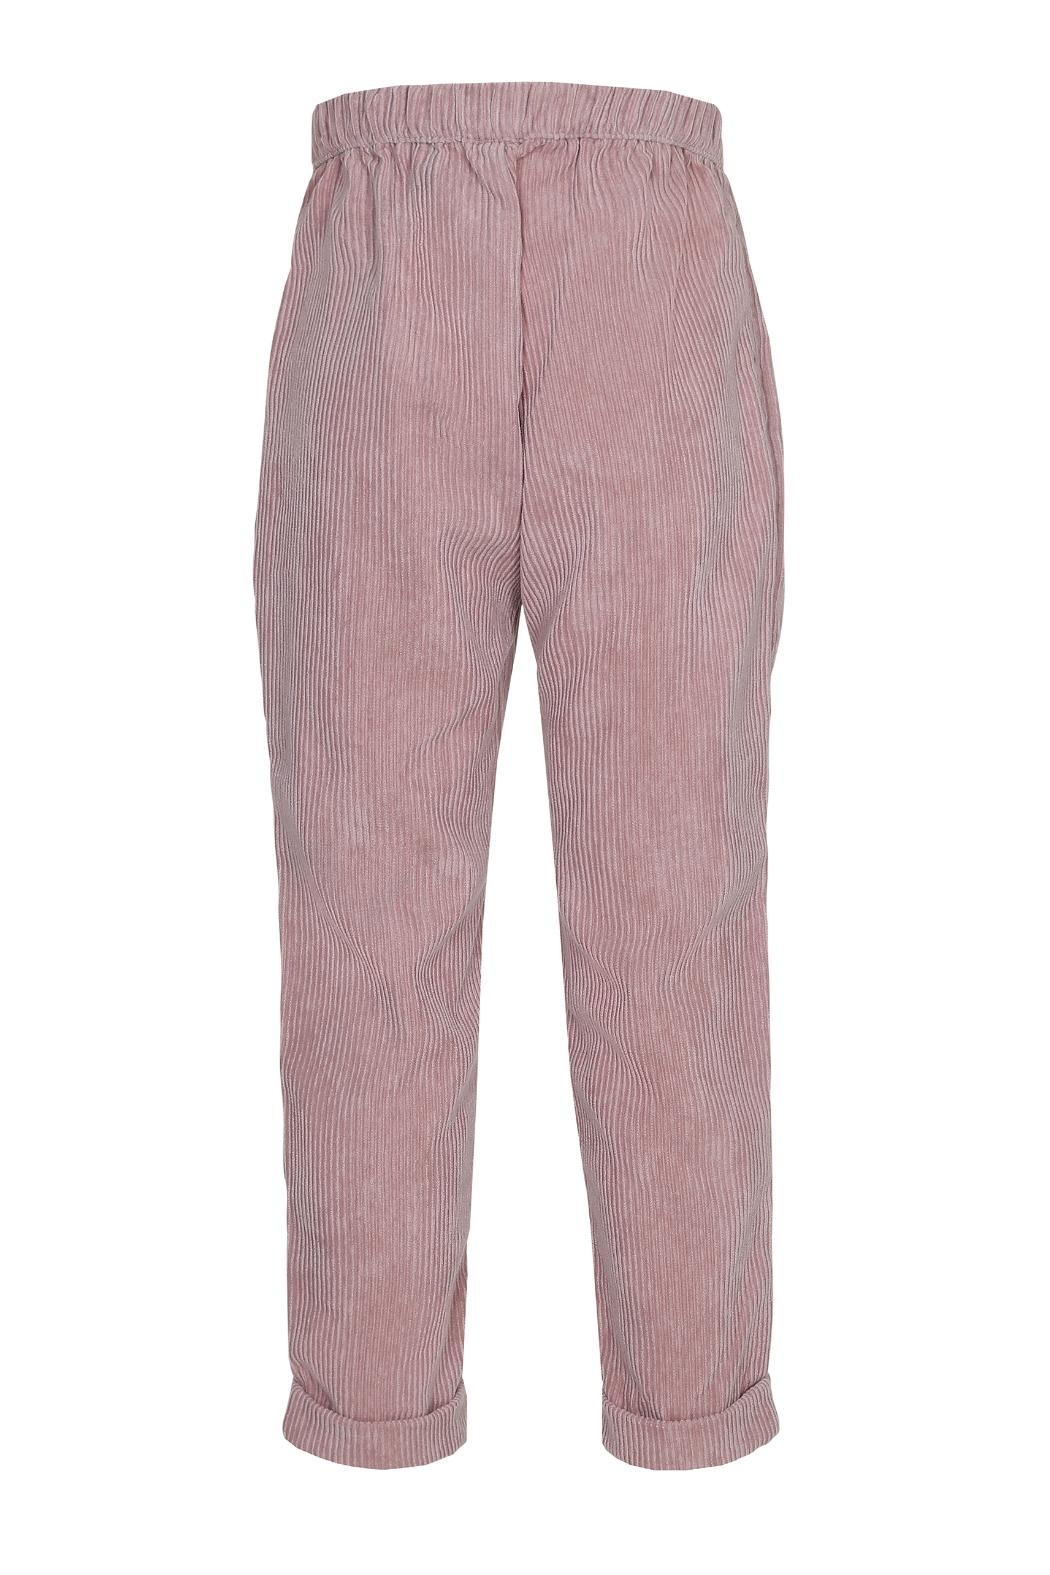 Molo Amelia Trousers - Front Full Image